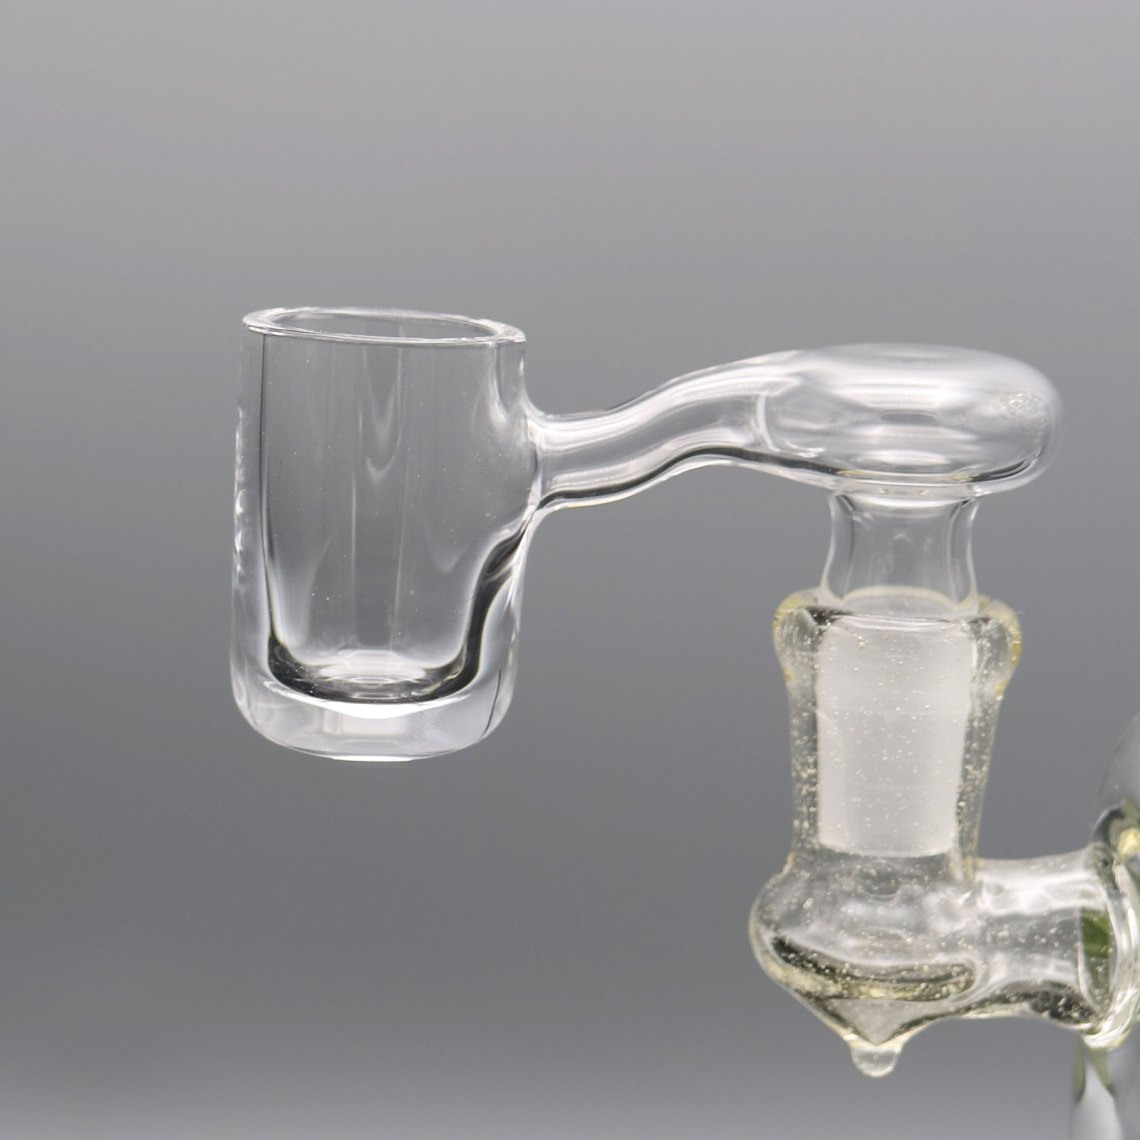 Jake Mizer – 14 mm Male Heatmizer Quartz Banger